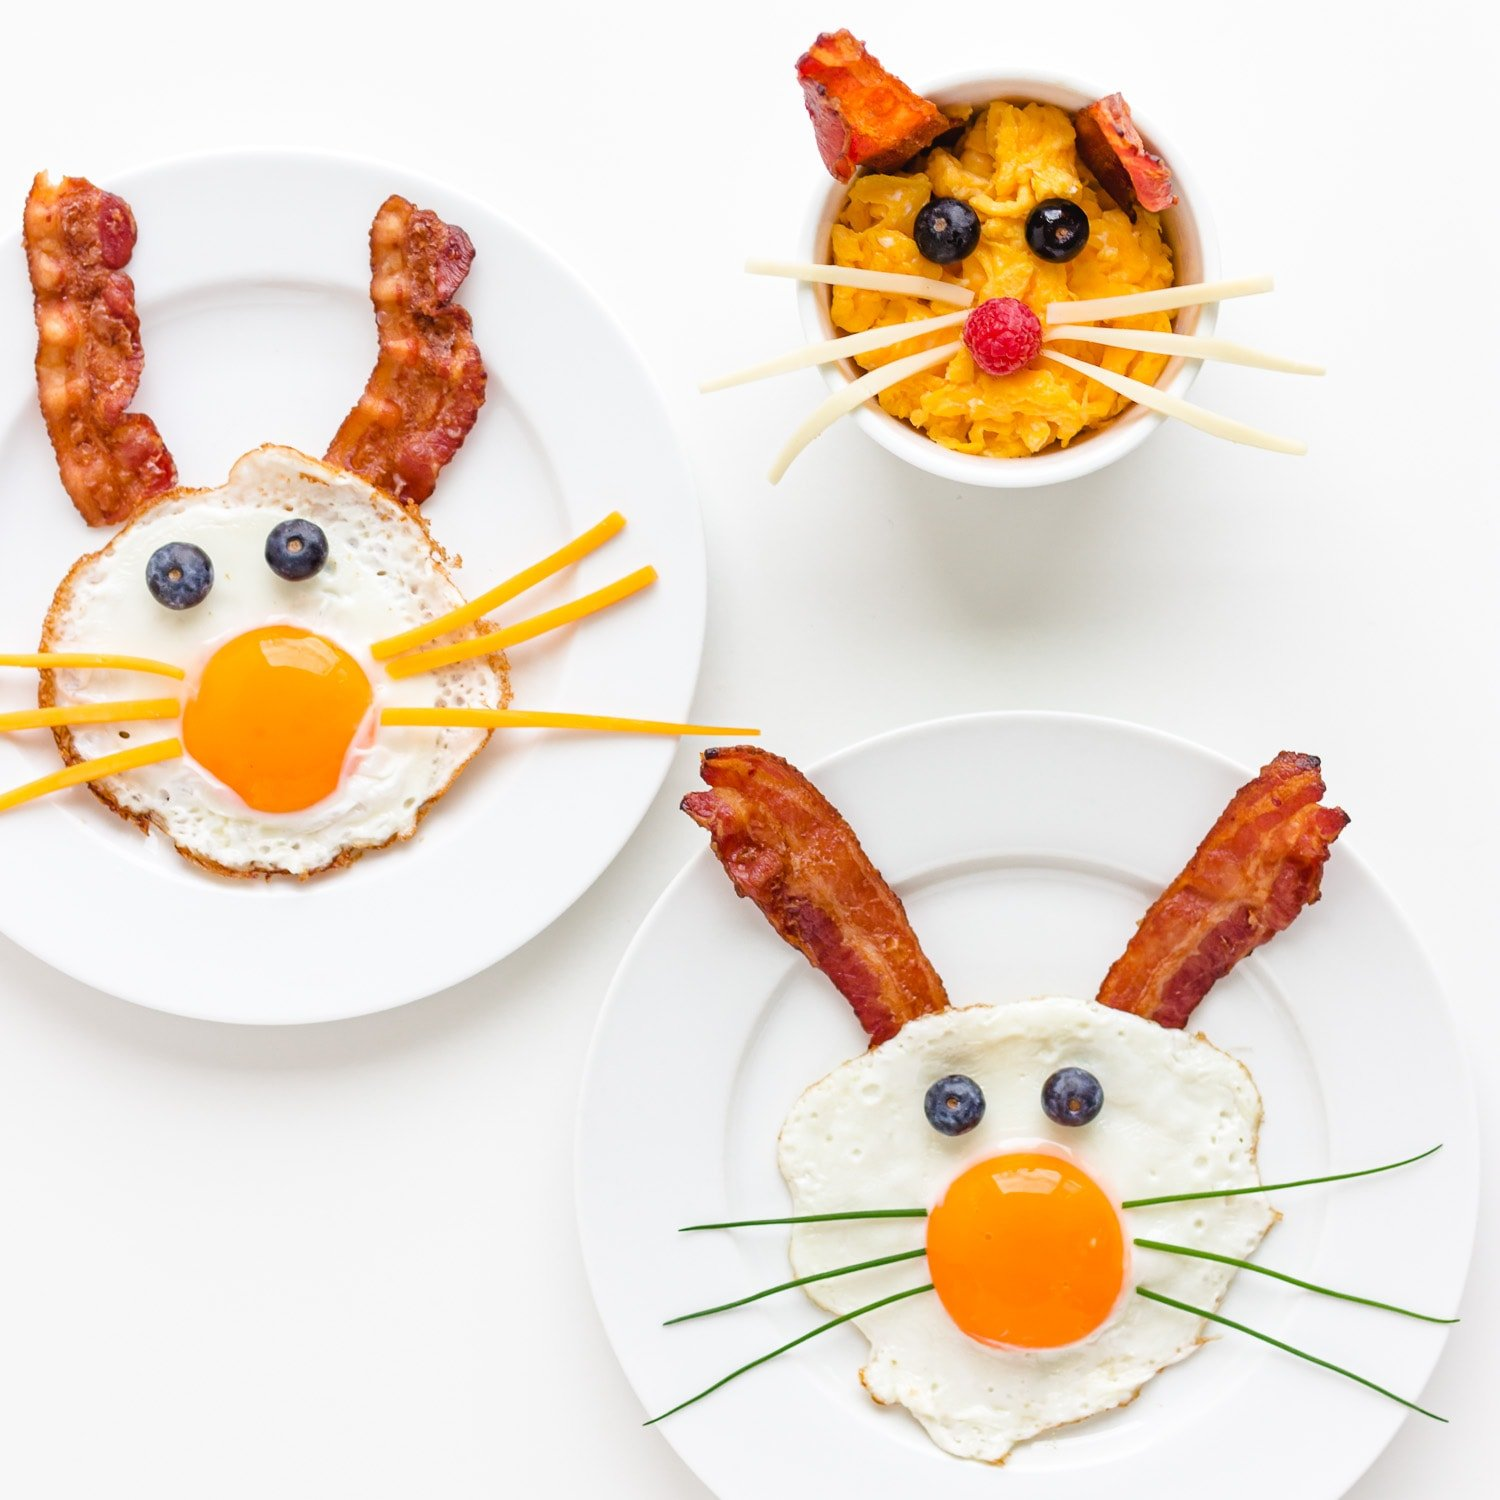 Three versions of bacon and egg bunnies using either fried eggs or scrambled eggs.